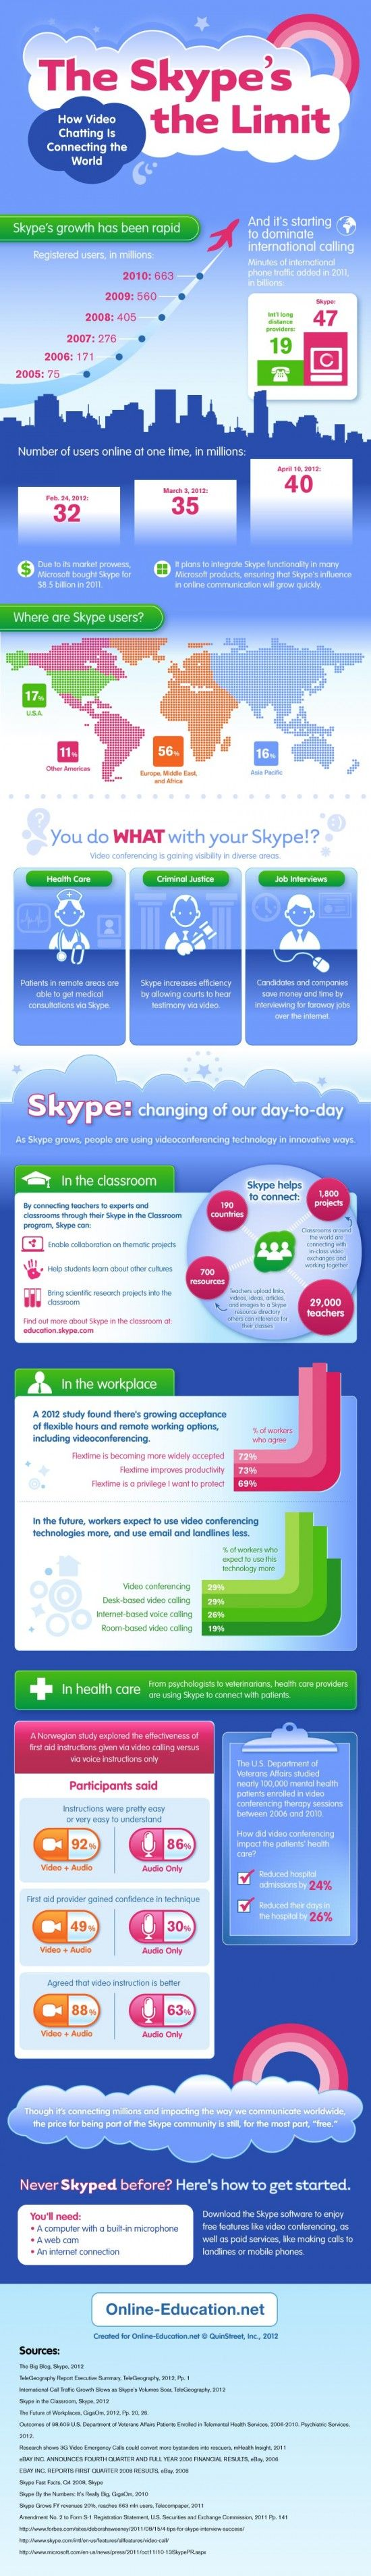 The Skype's the Limit #infographic